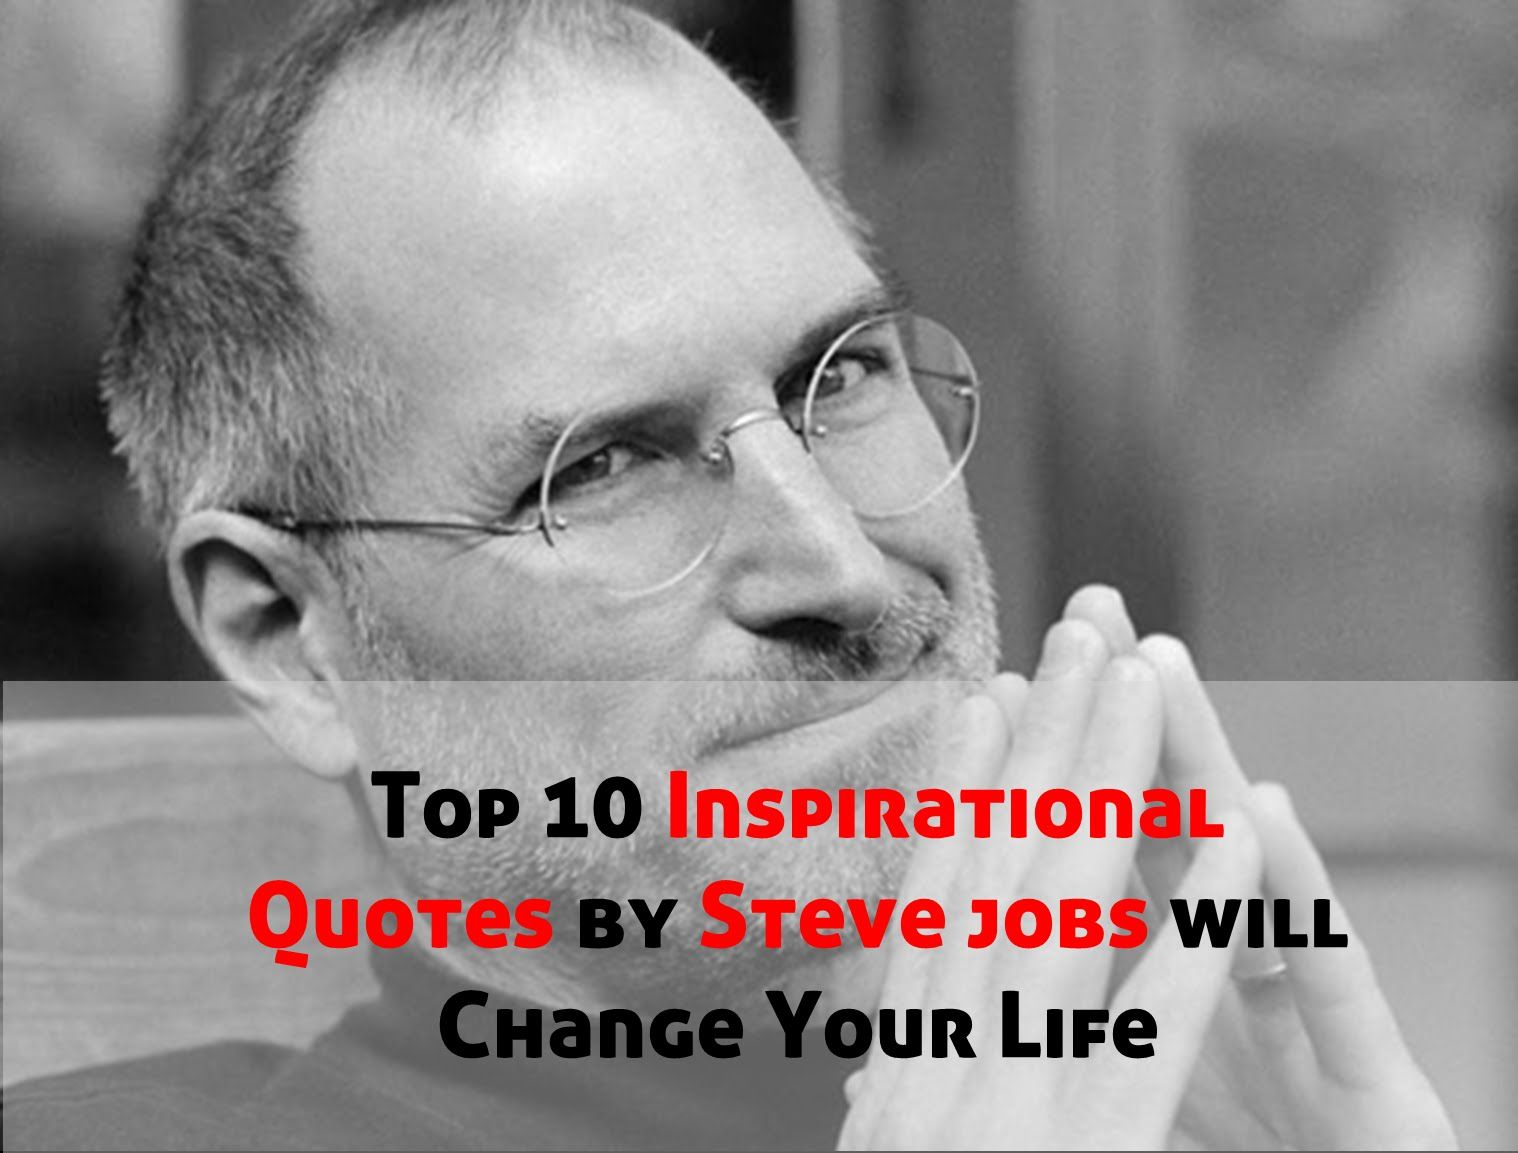 Inspirational Quotes To Change Your Life Best Inspirational Quotessteve Jobs Will Change Your Life